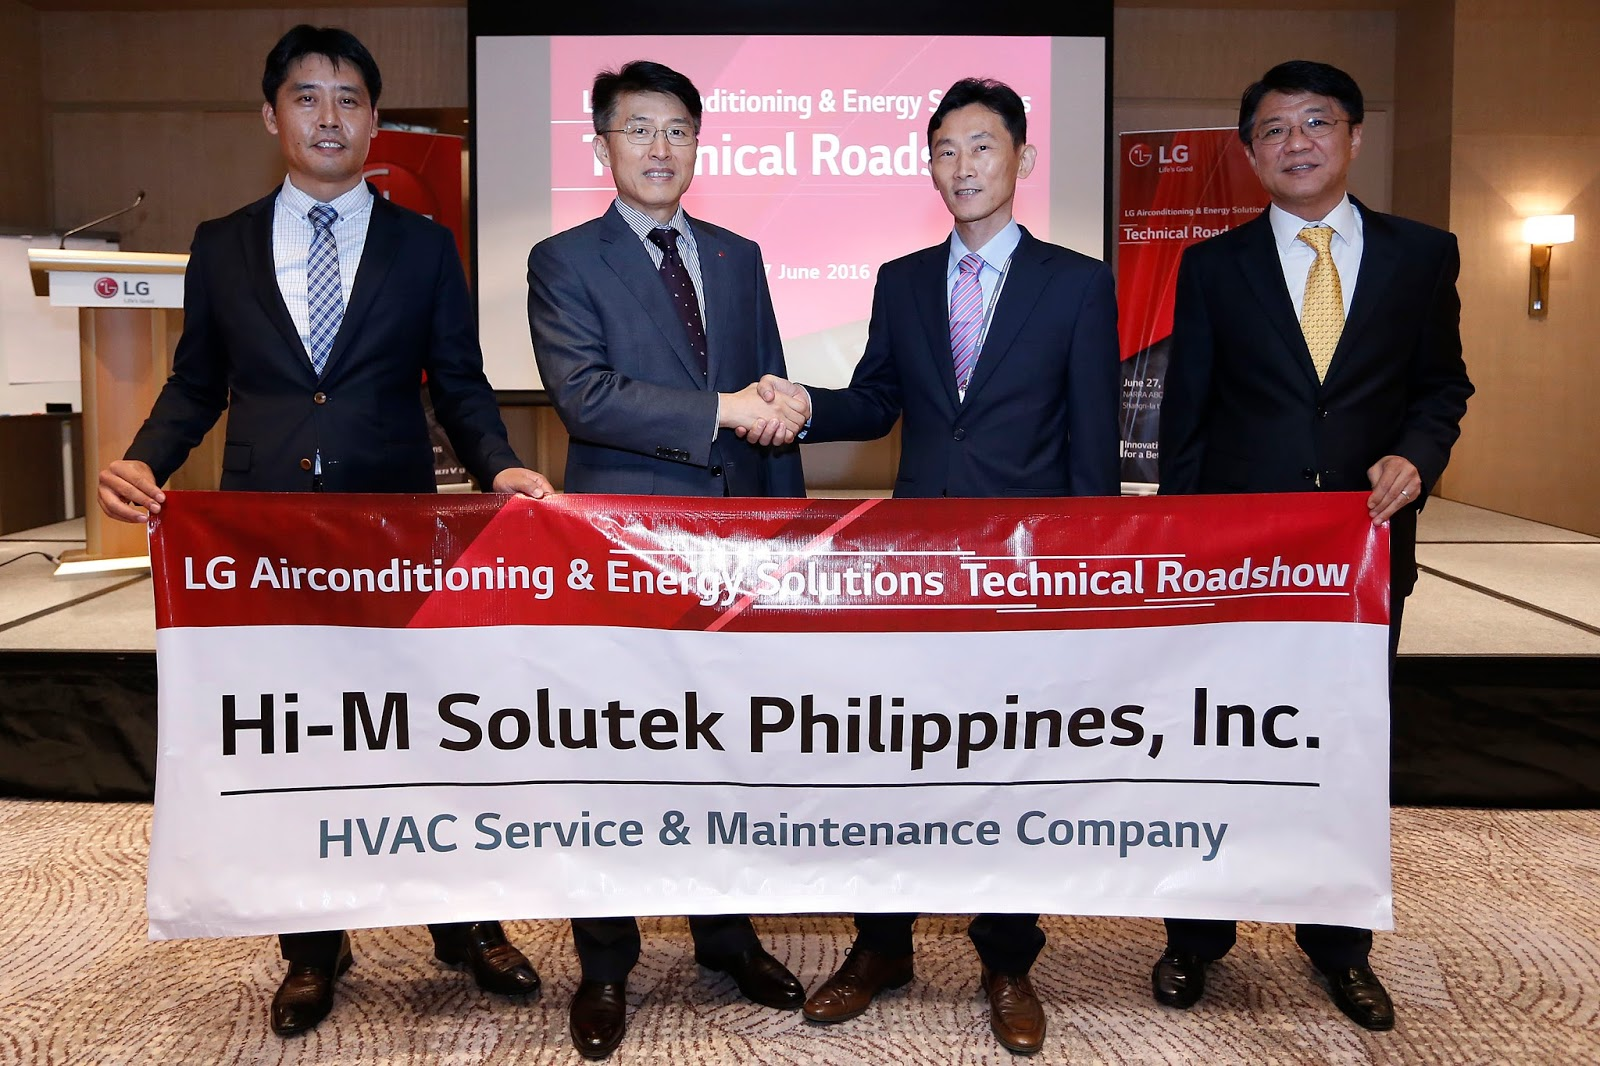 LG Philippines announces the arrival of Hi-M Solutek